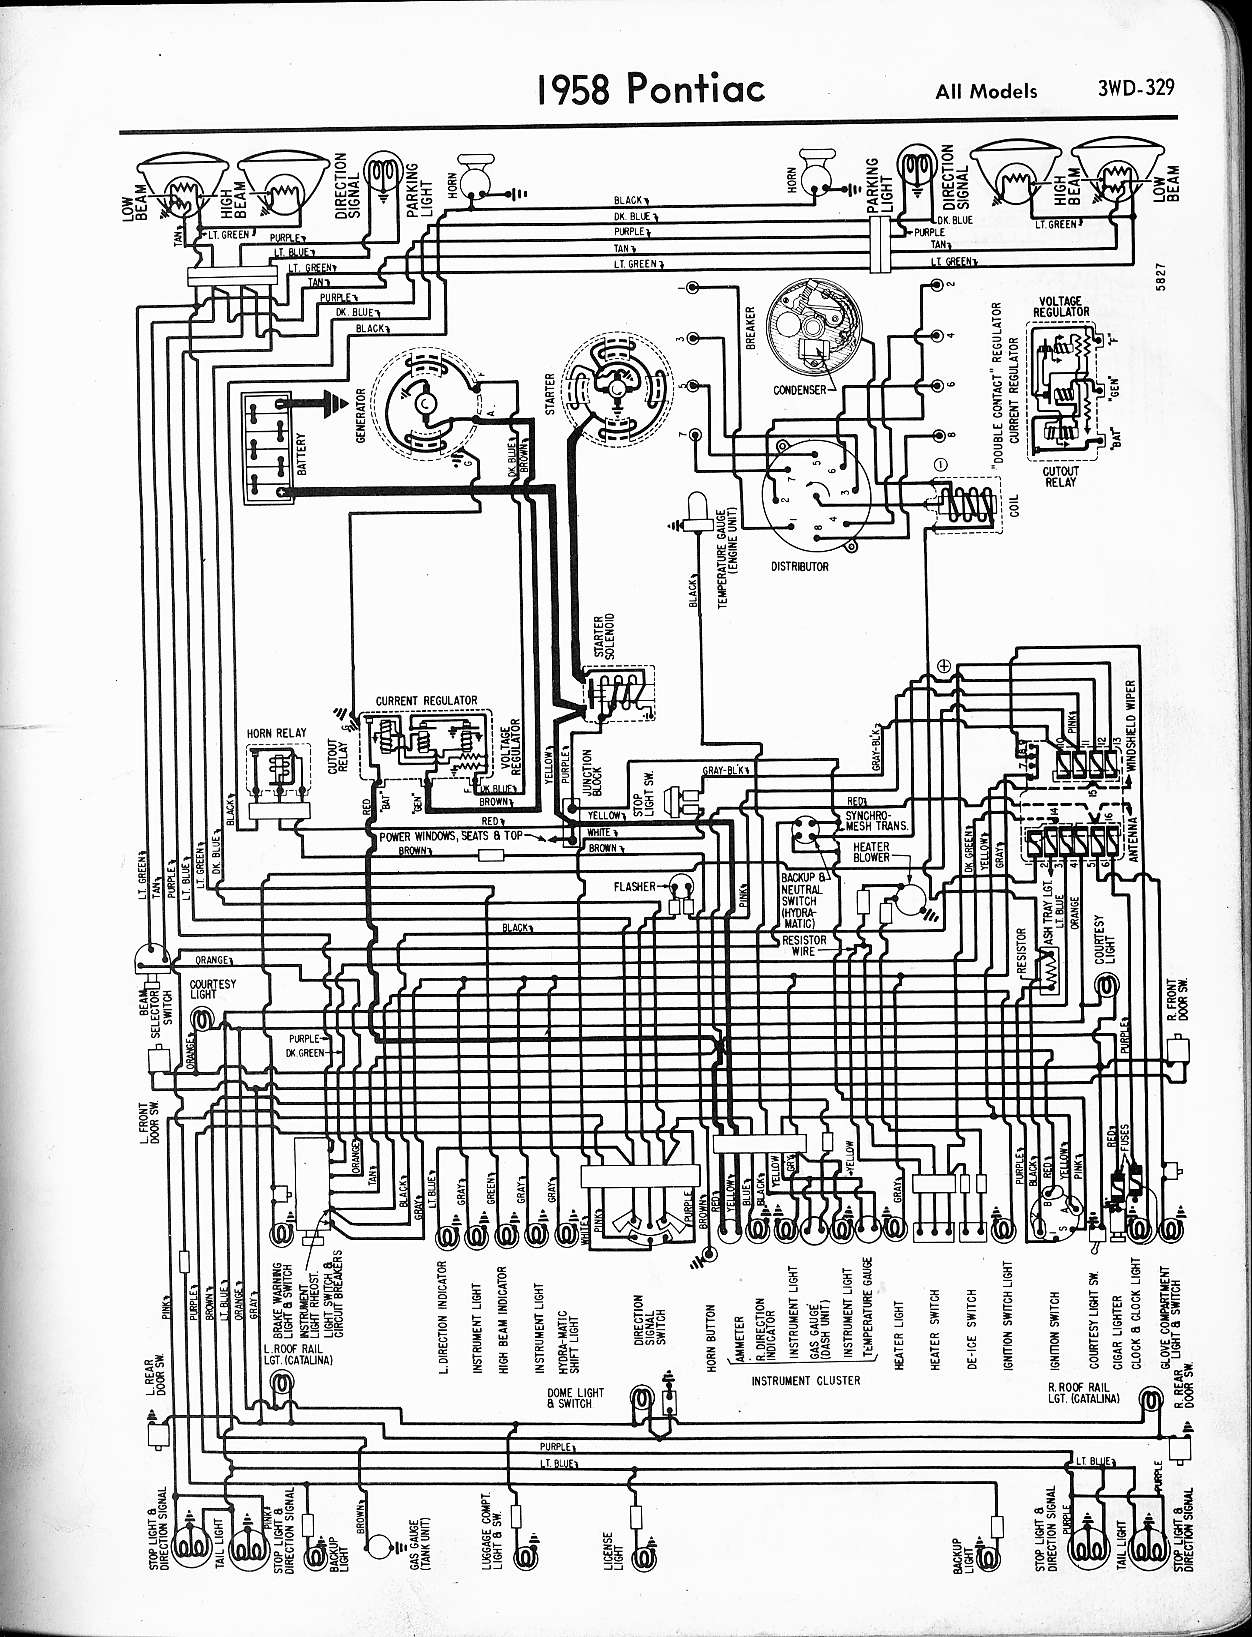 1969 Pontiac Lemans Wiring Diagram Fuse Box 1970 Wallace Racing Diagrams Rh Wallaceracing Com Le Mans